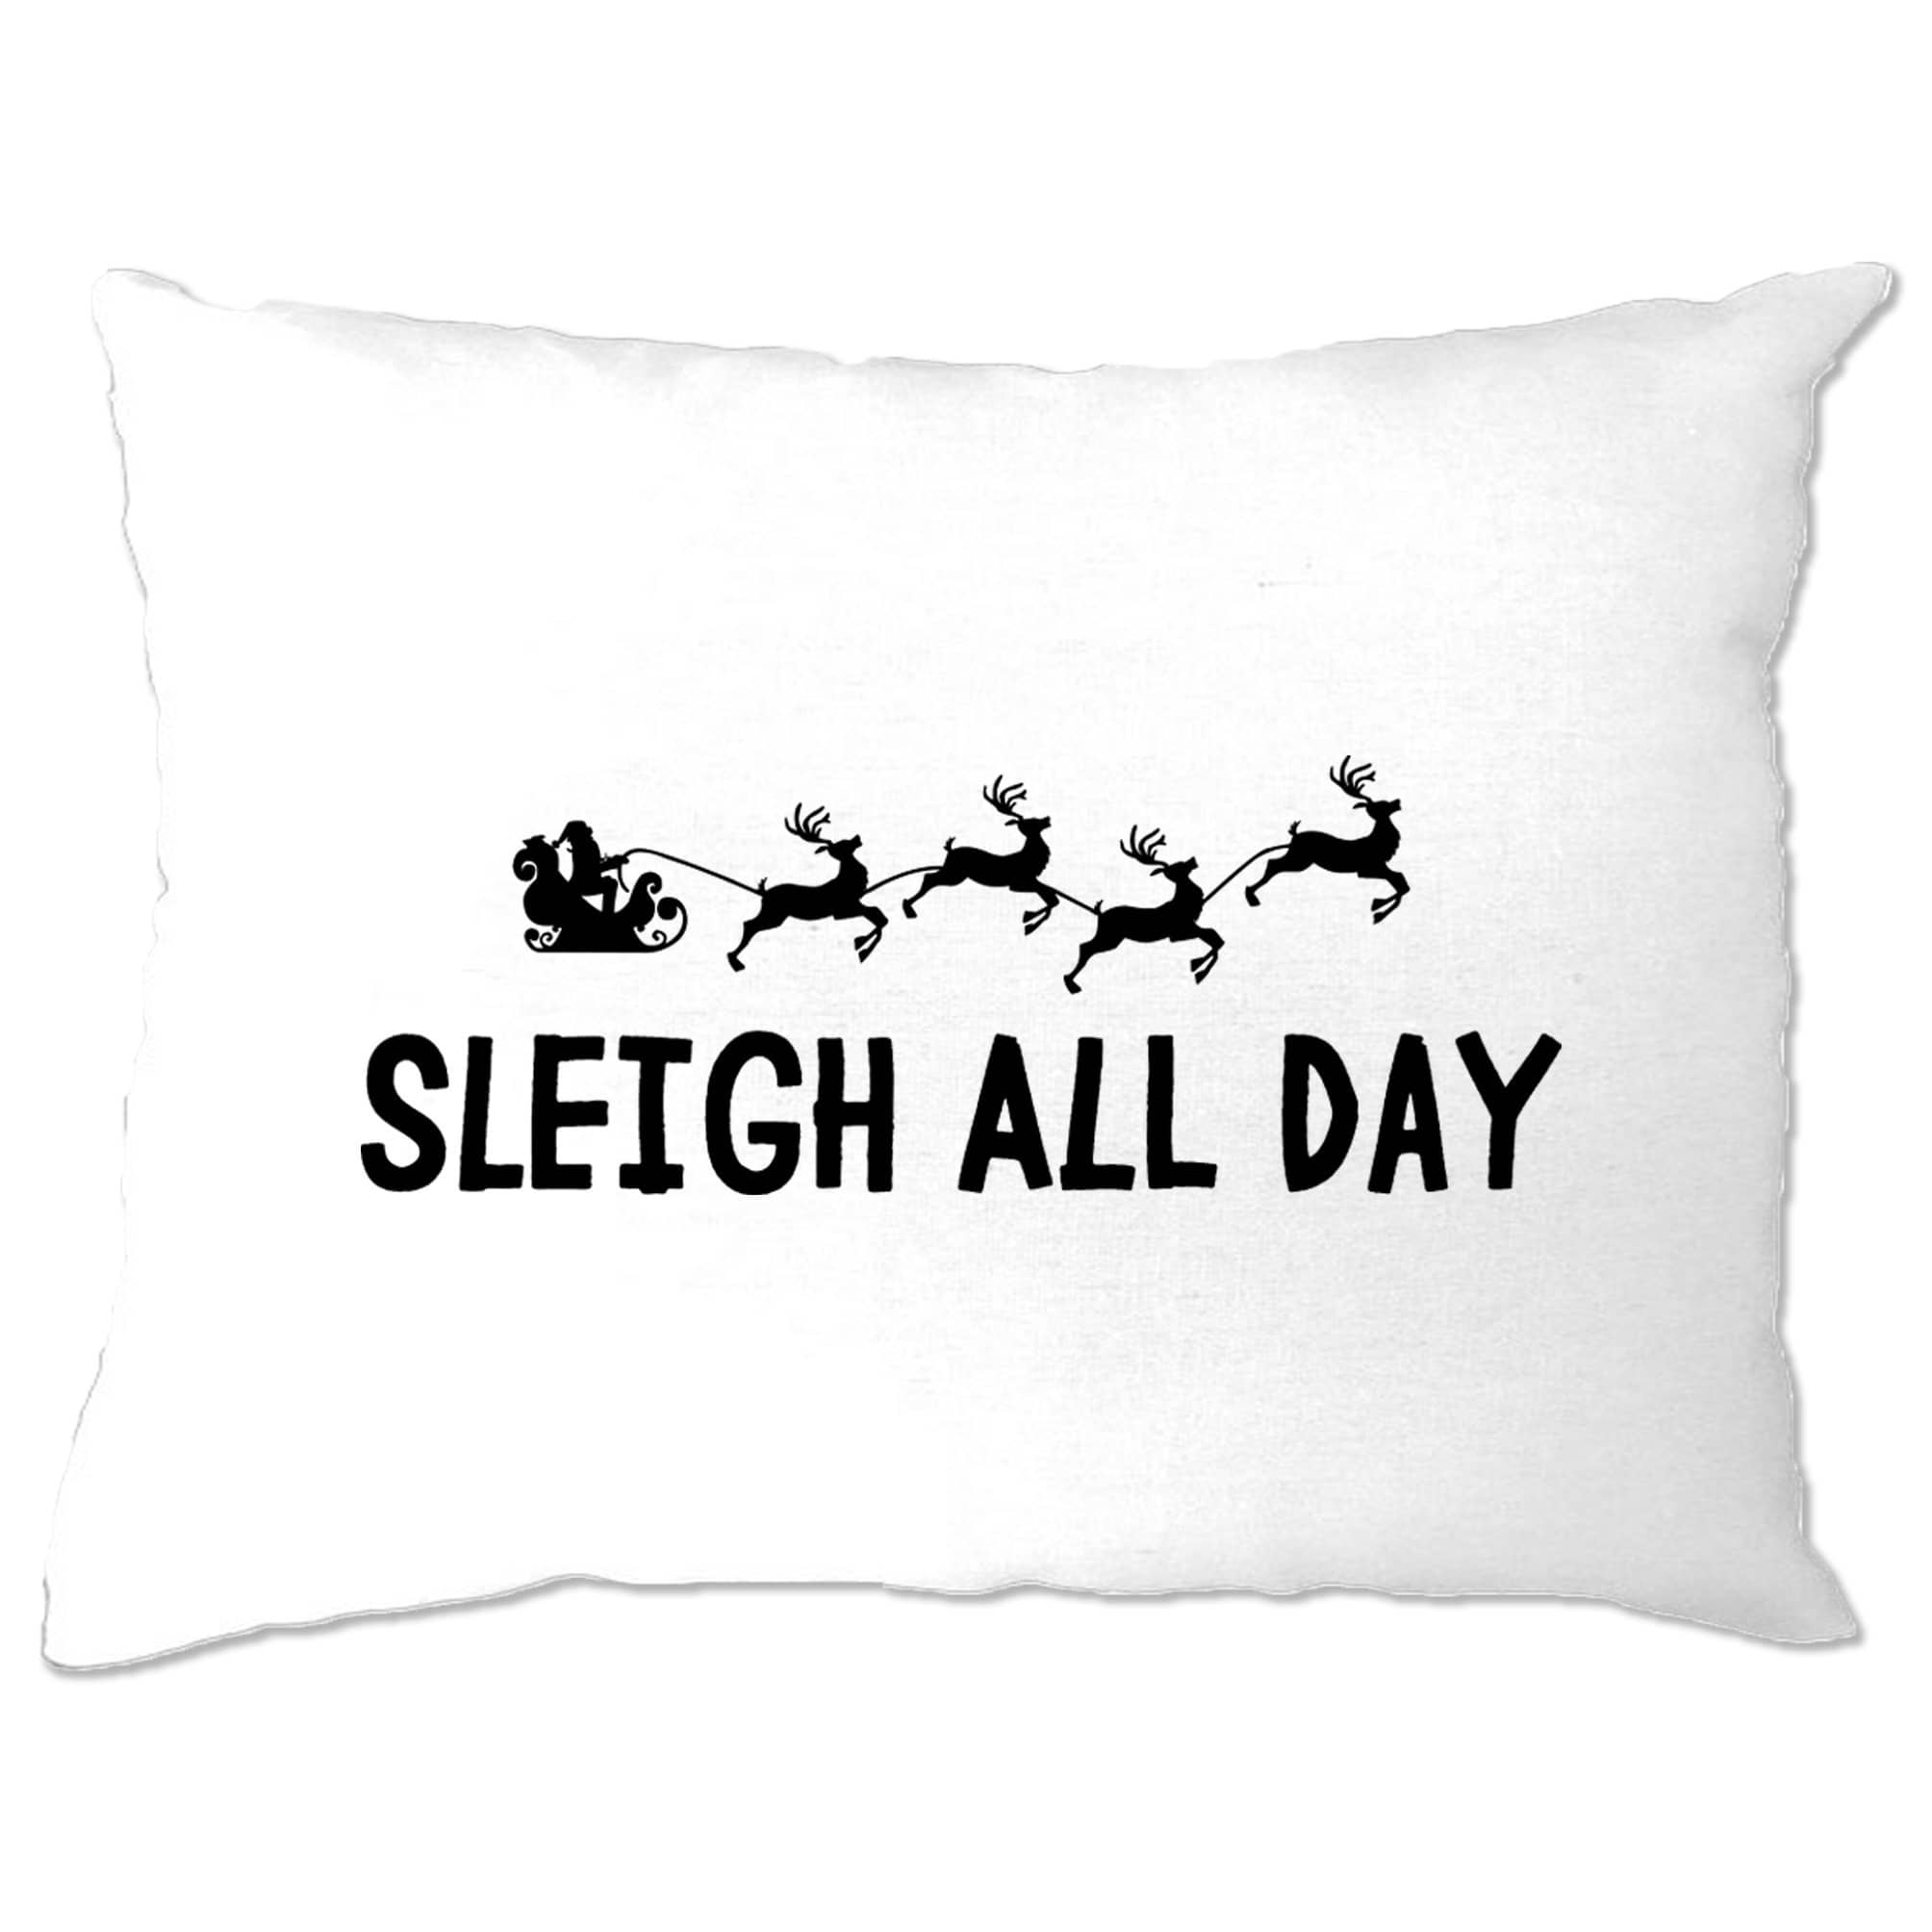 Joke Christmas Pillow Case Sleigh Slay All Day Pun Novelty